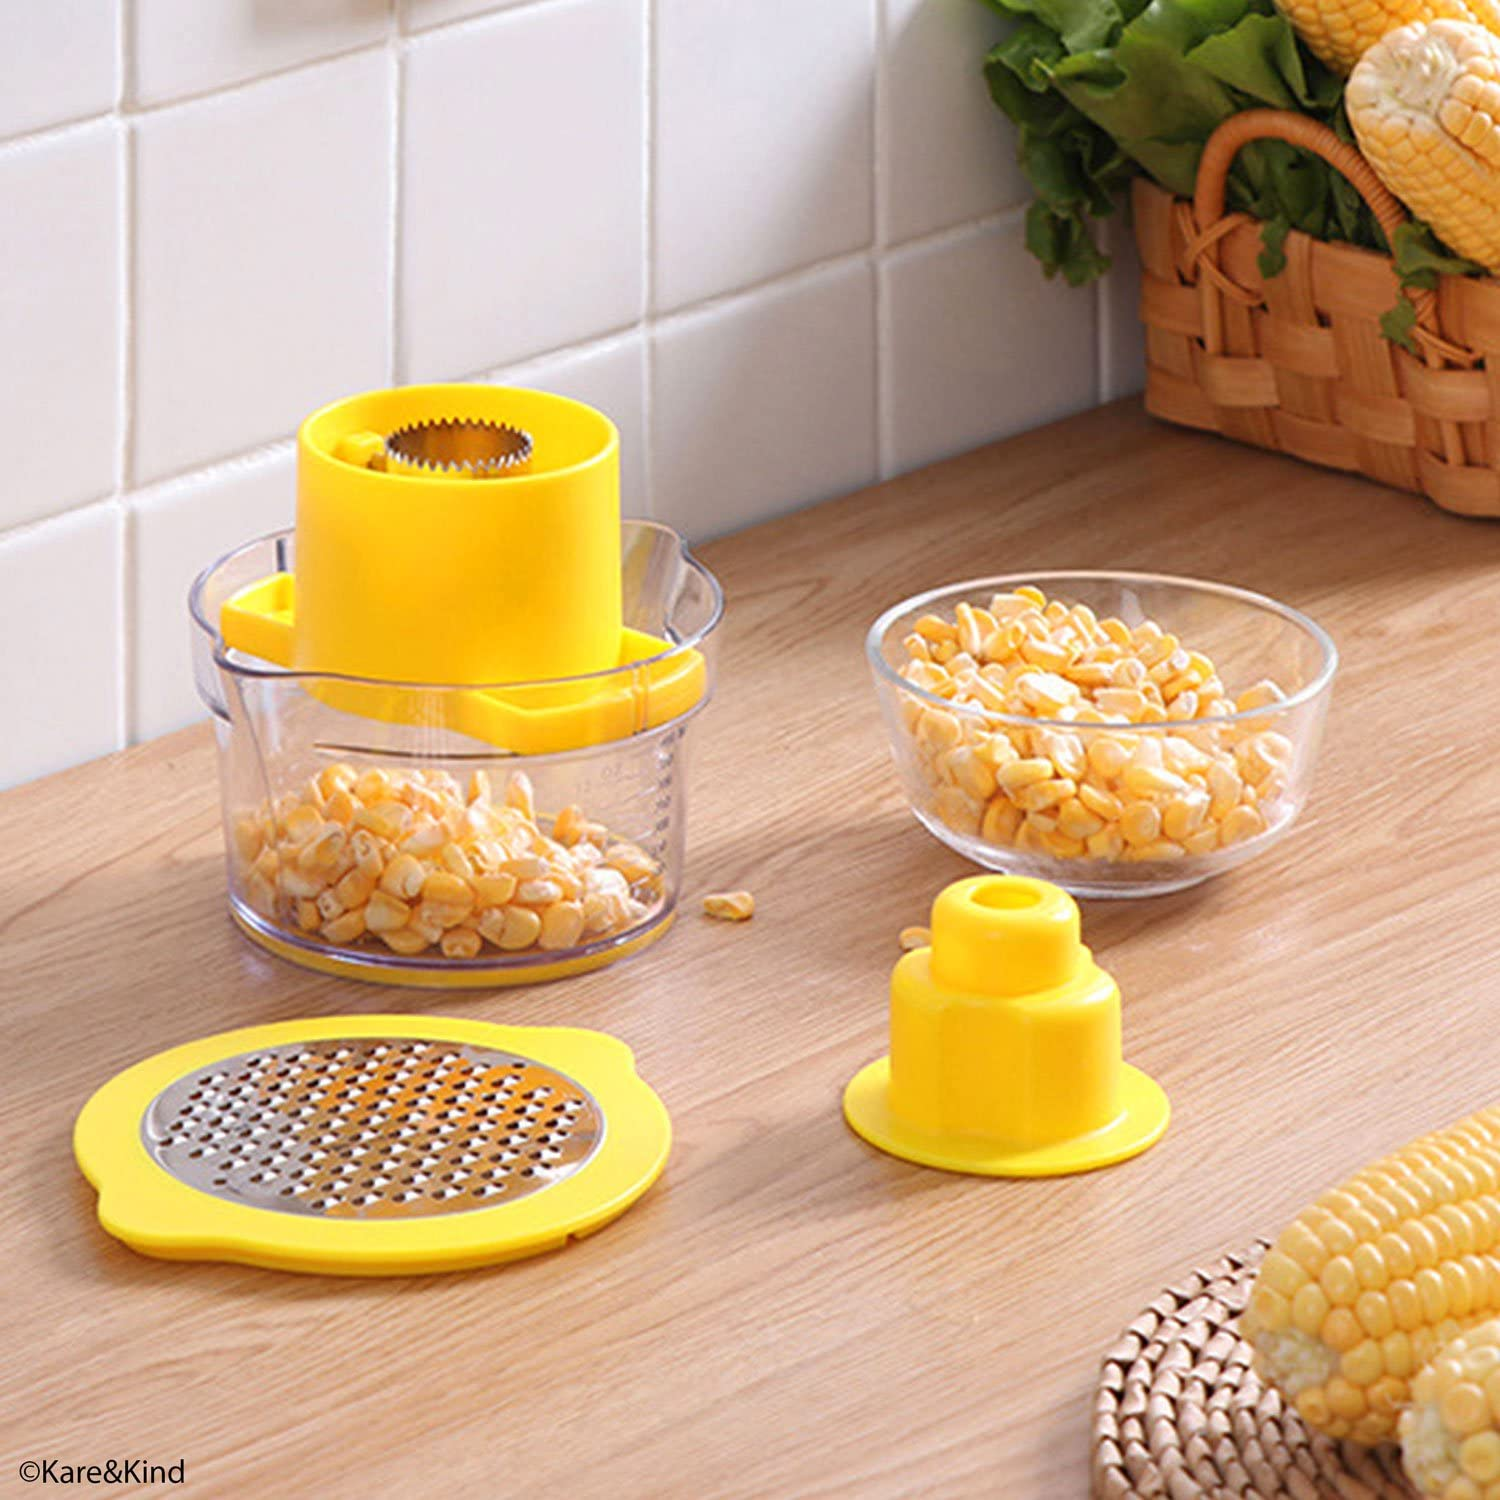 Corn on the Cob Grips with Interlocking Design for Safety and Storage Perfect for Salads BBQ 1x Corn Stripping Tool and 4x Corn Holder Pins etc. Corn Stripping /& Holders